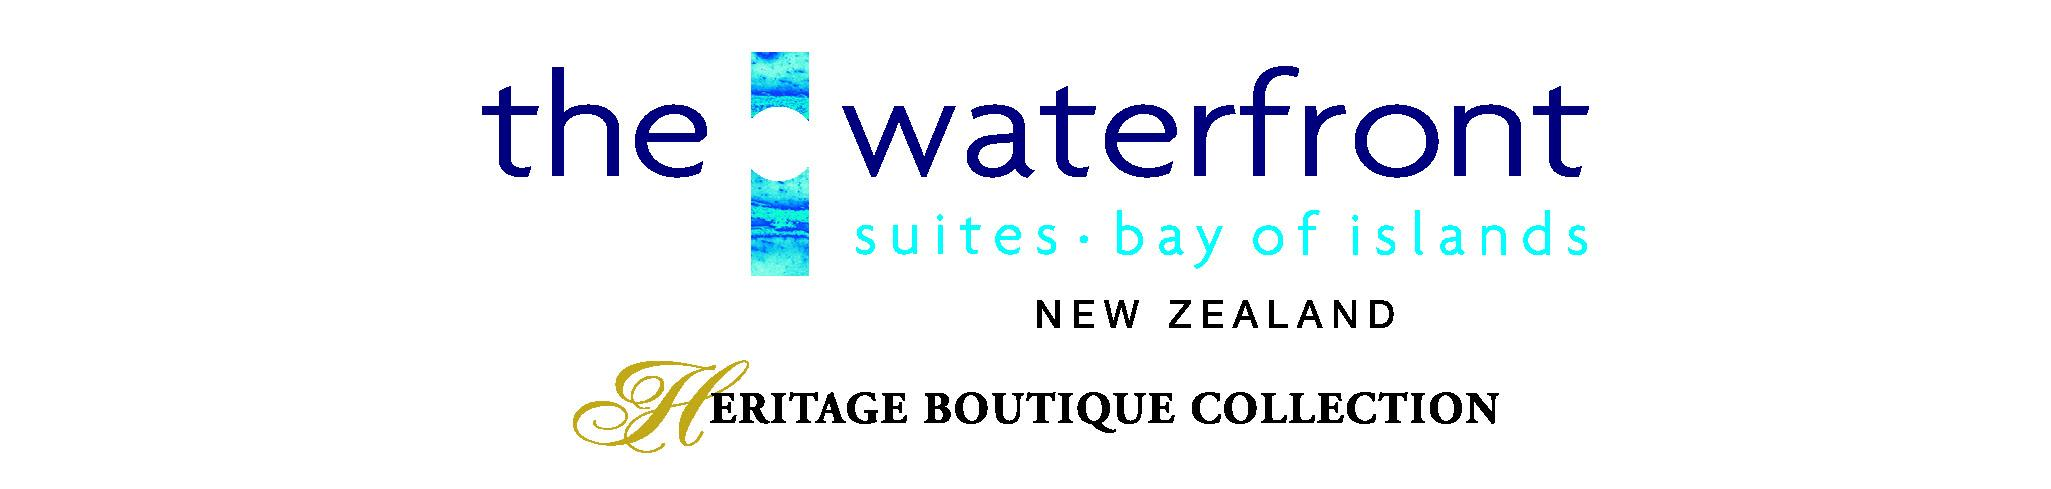 The Waterfront Suites – Heritage Collection